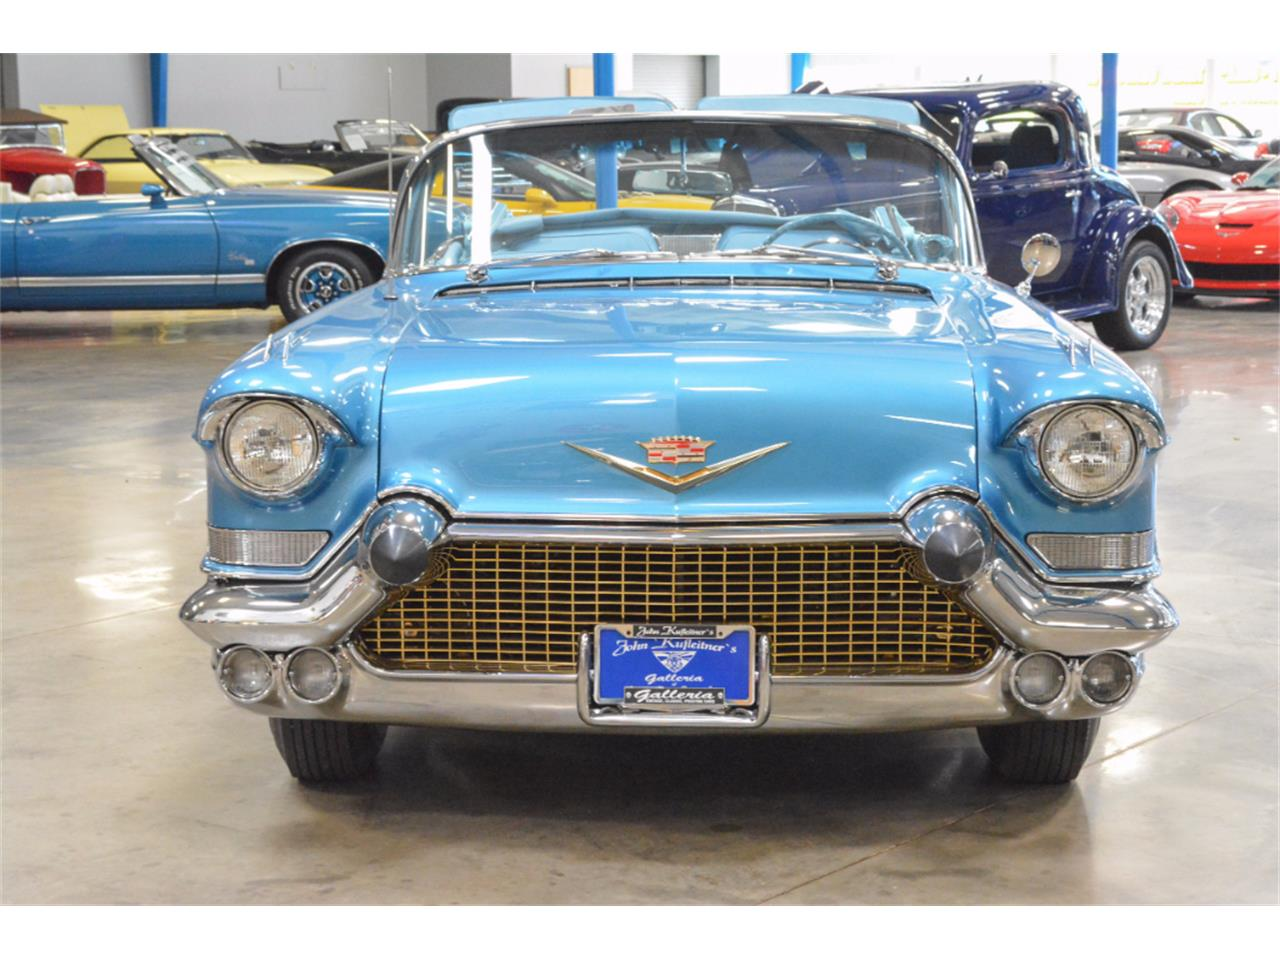 Large Picture of '57 Cadillac Eldorado Auction Vehicle Offered by John Kufleitner's Galleria - LKLZ